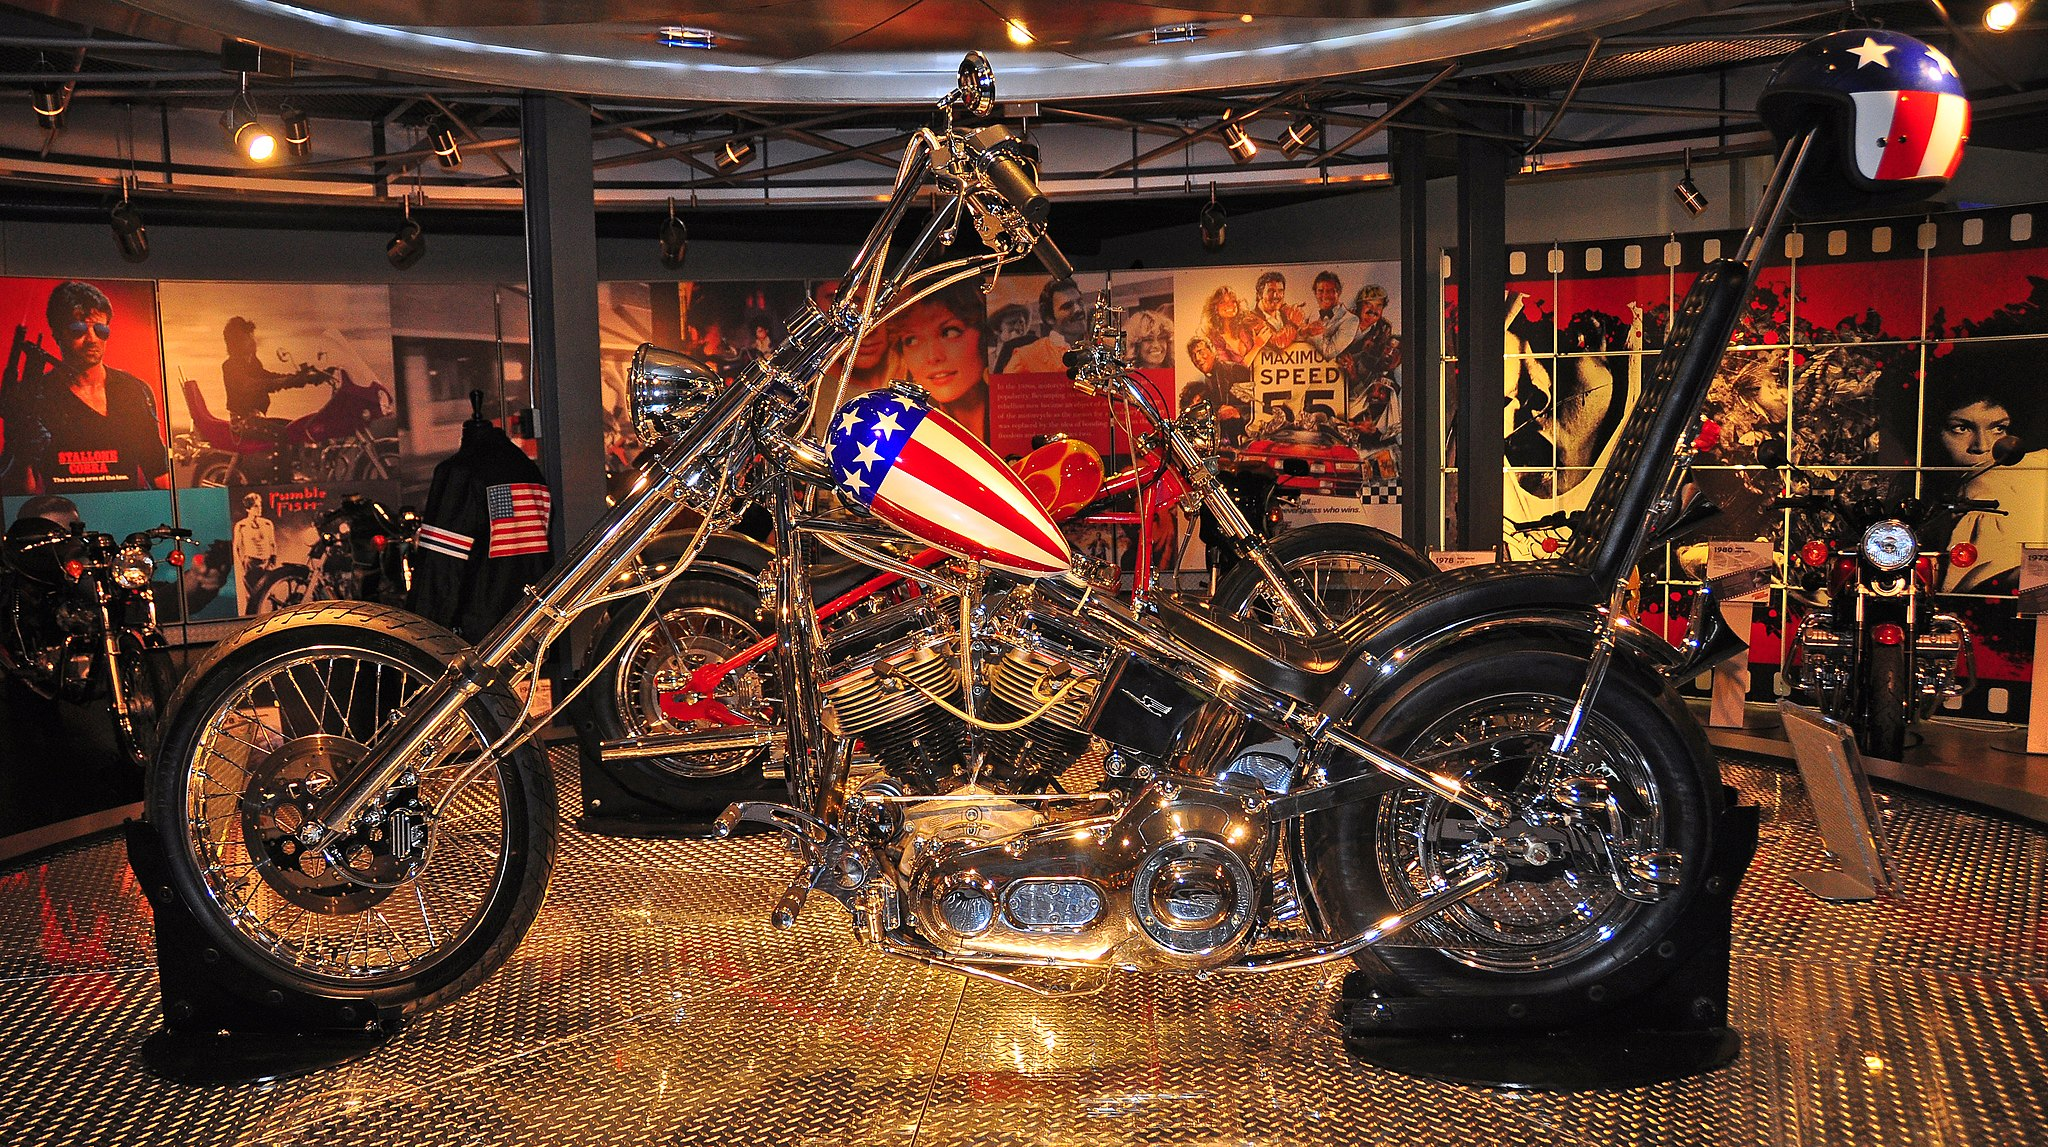 Chopper with red, white and blue fuel tank.